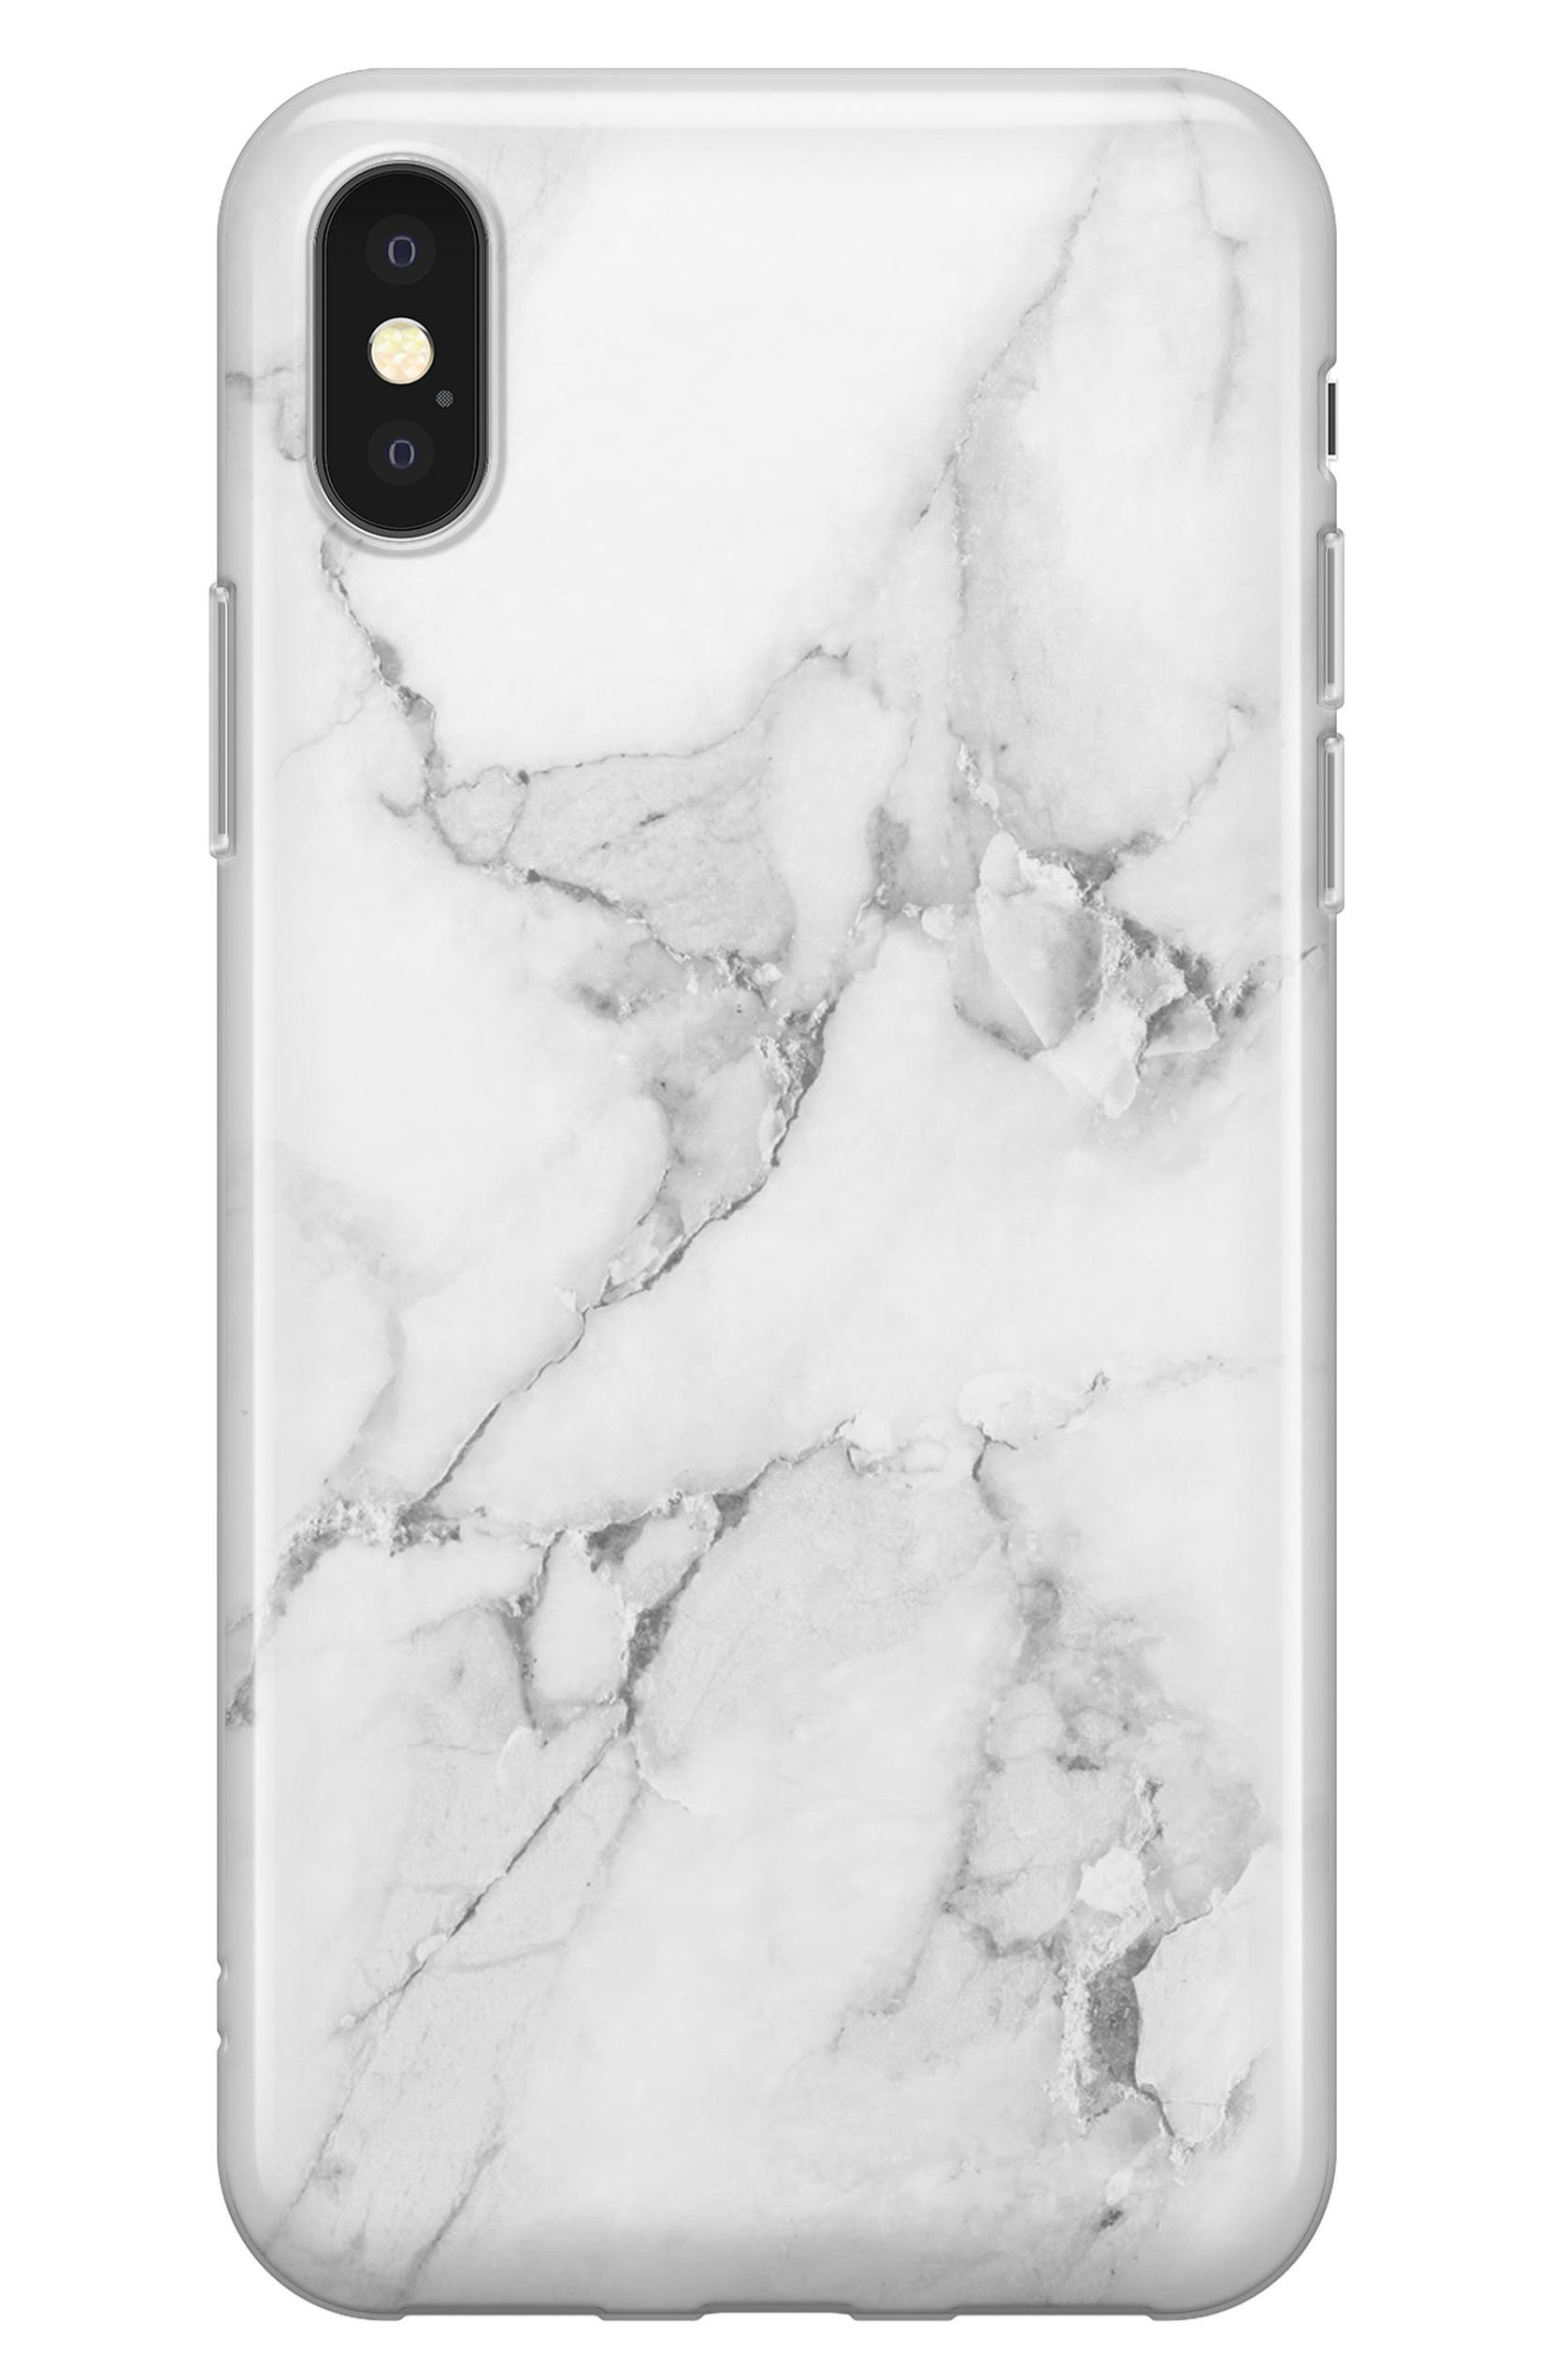 newest d2577 ade58 White Marble iPhone X/Xs/Xs Max & XR Case